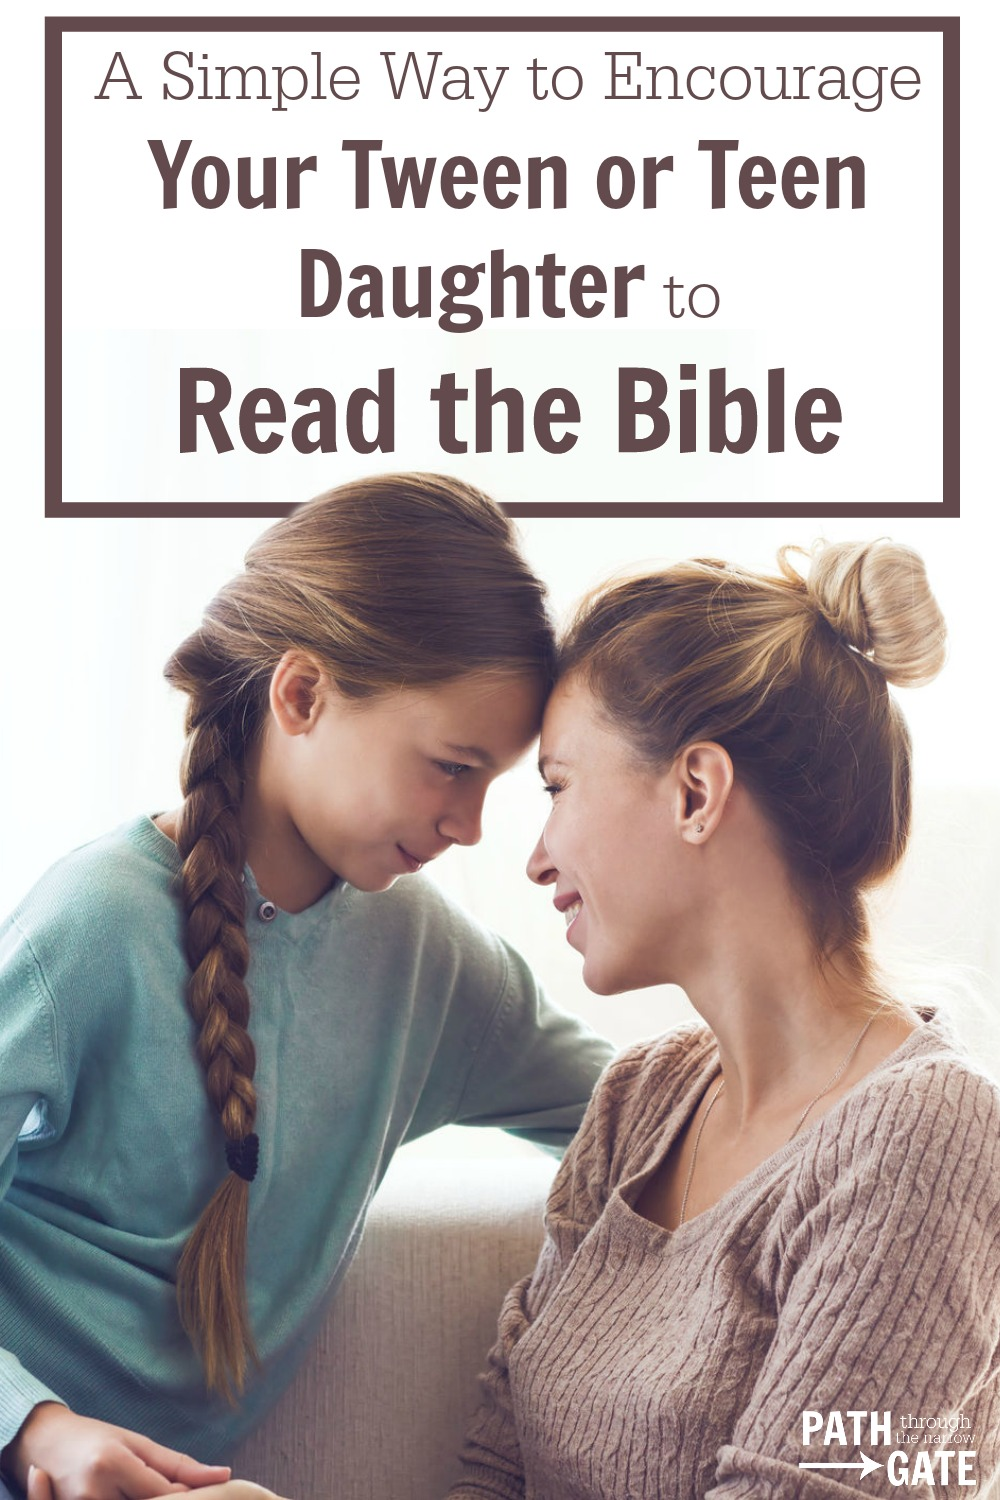 Would you like to encourage your tween or teen daughter to develop a habit of daily Bible reading while also building a stronger relationship with her? If so, this Mother/Daughter Bible Reading Journal is designed to help you do just that!|Path Through the Narrow Gate.com